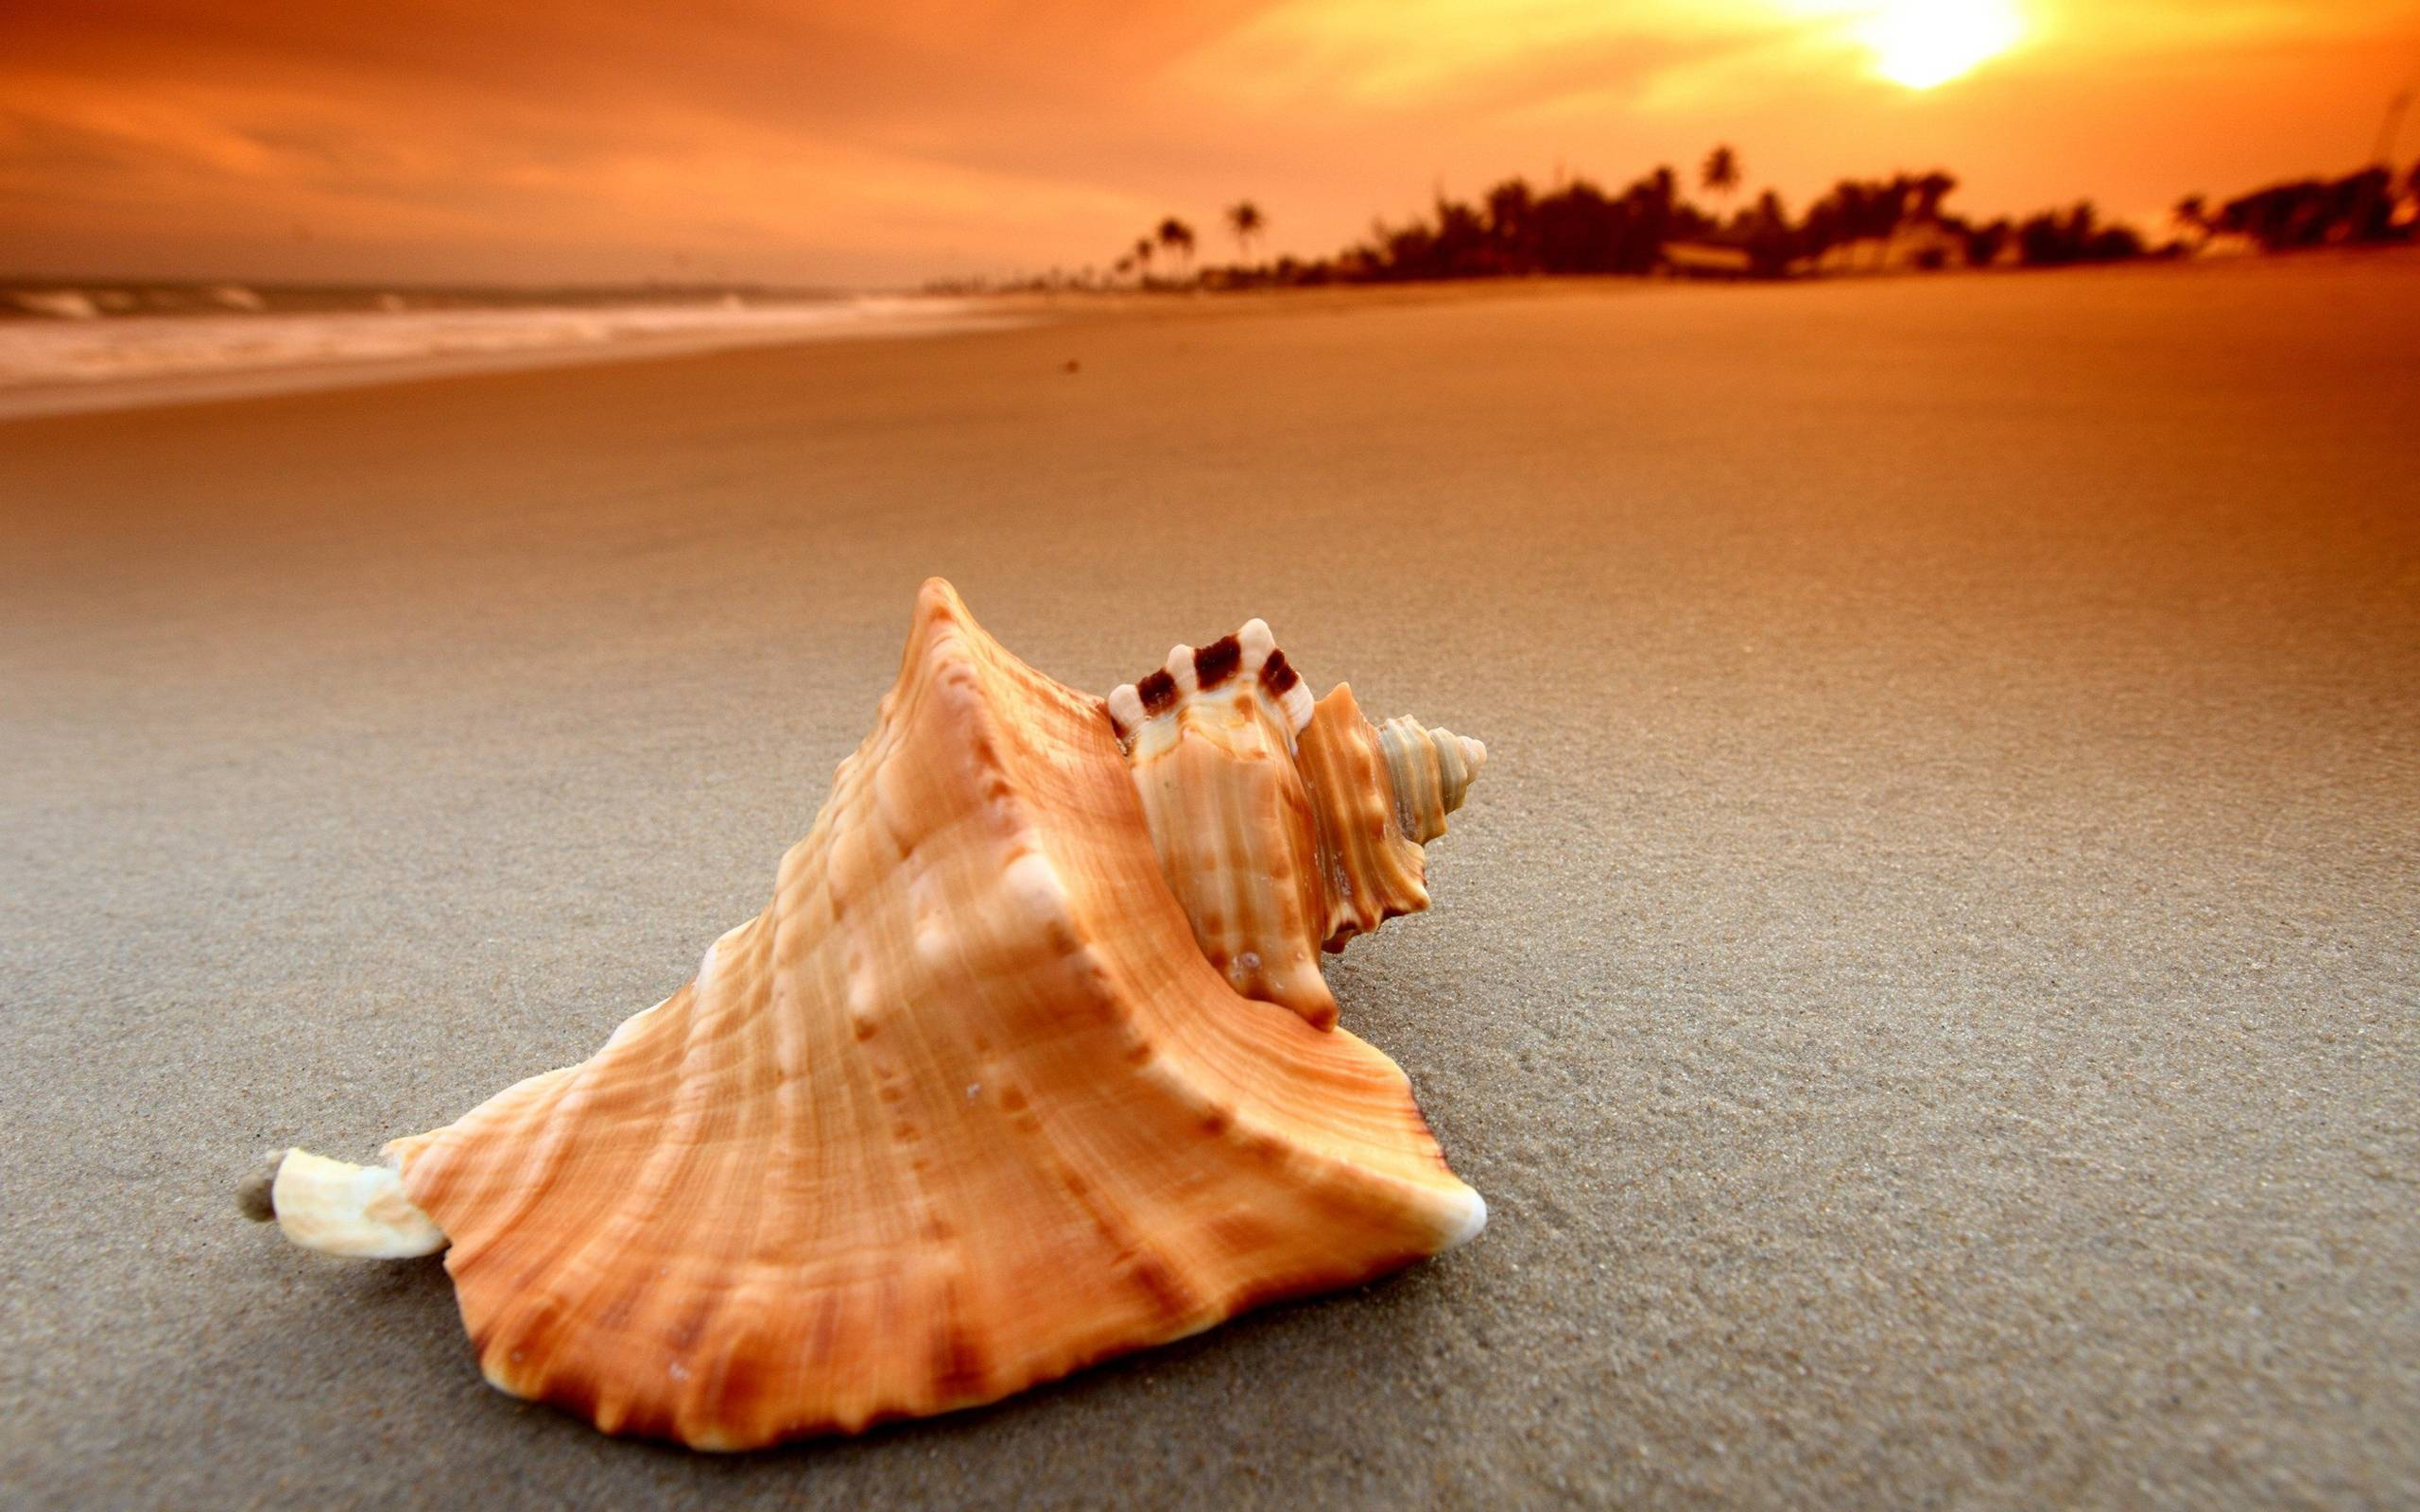 Whelk Sea Shell Wallpapers 2560X1600, Shell Photography